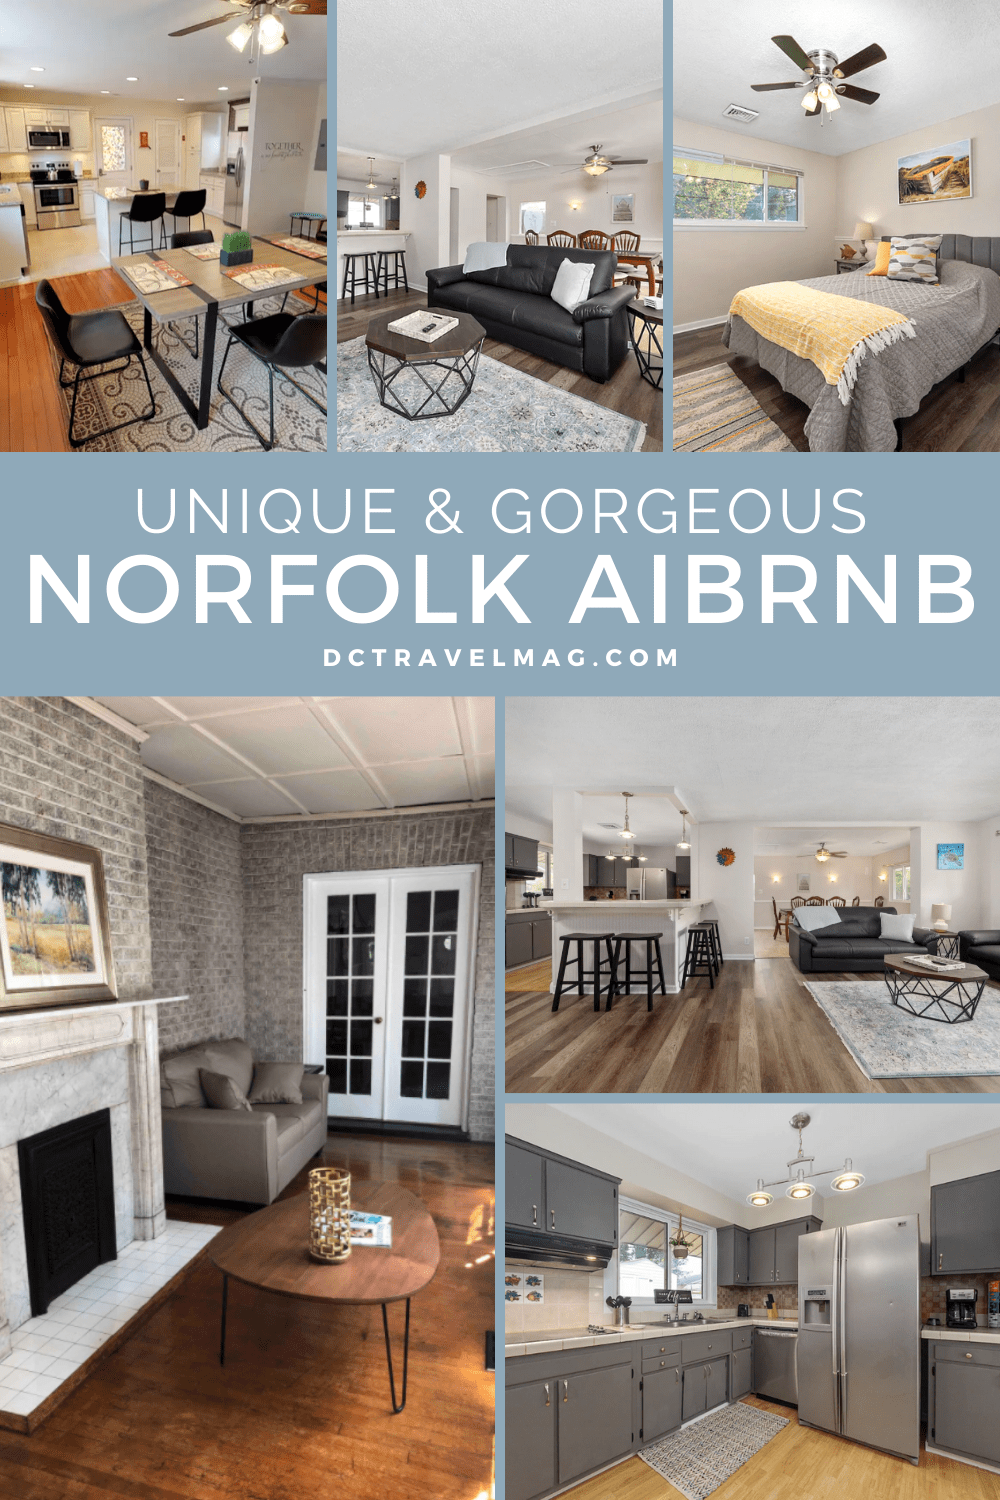 Norfolk Airbnb Virginia